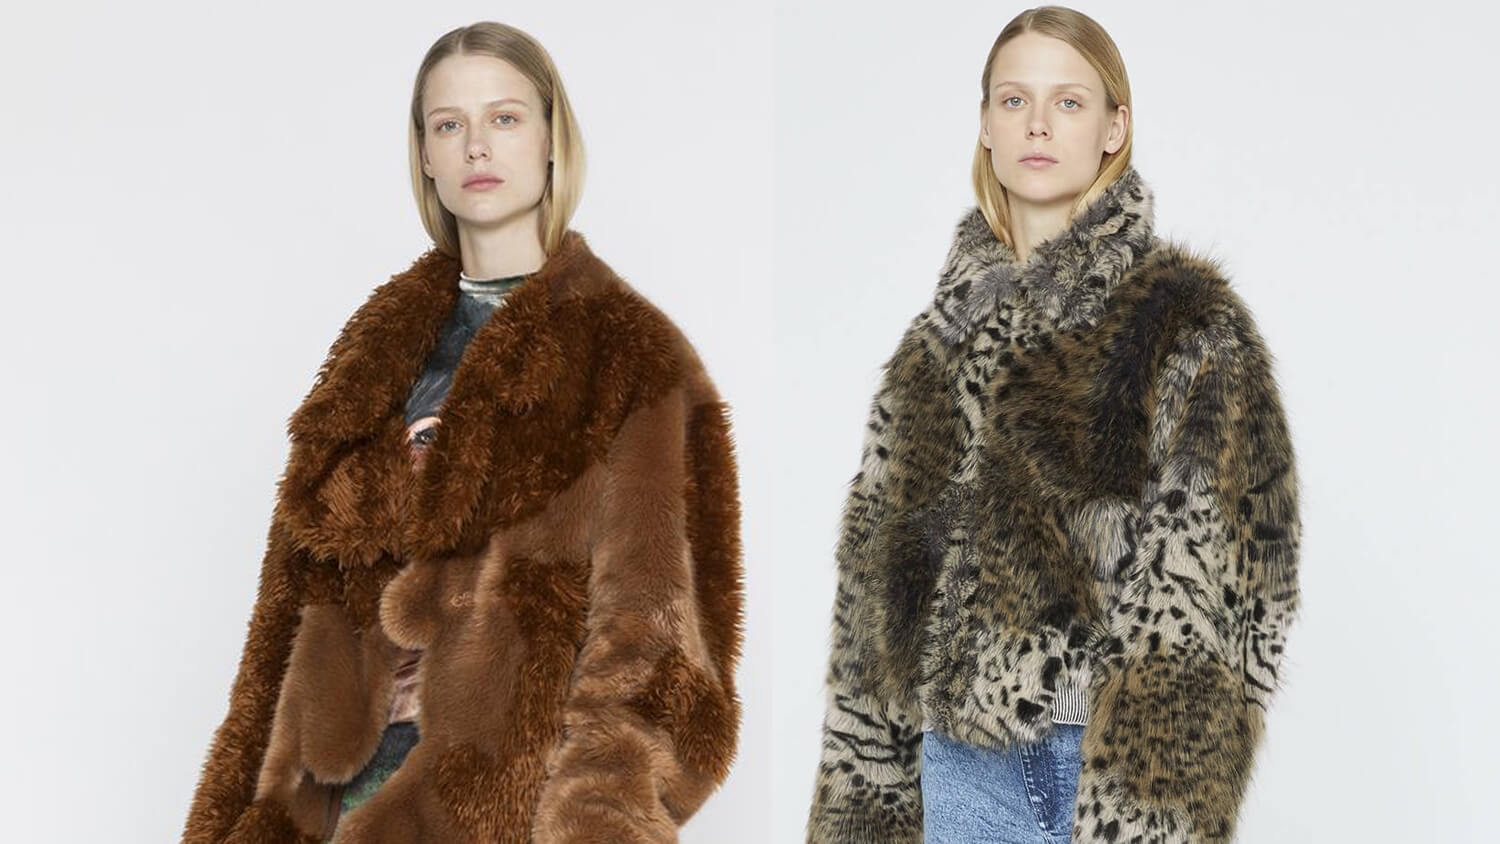 Vegan Fashion Designer Stella McCartney Launches Cruelty-Free Coats